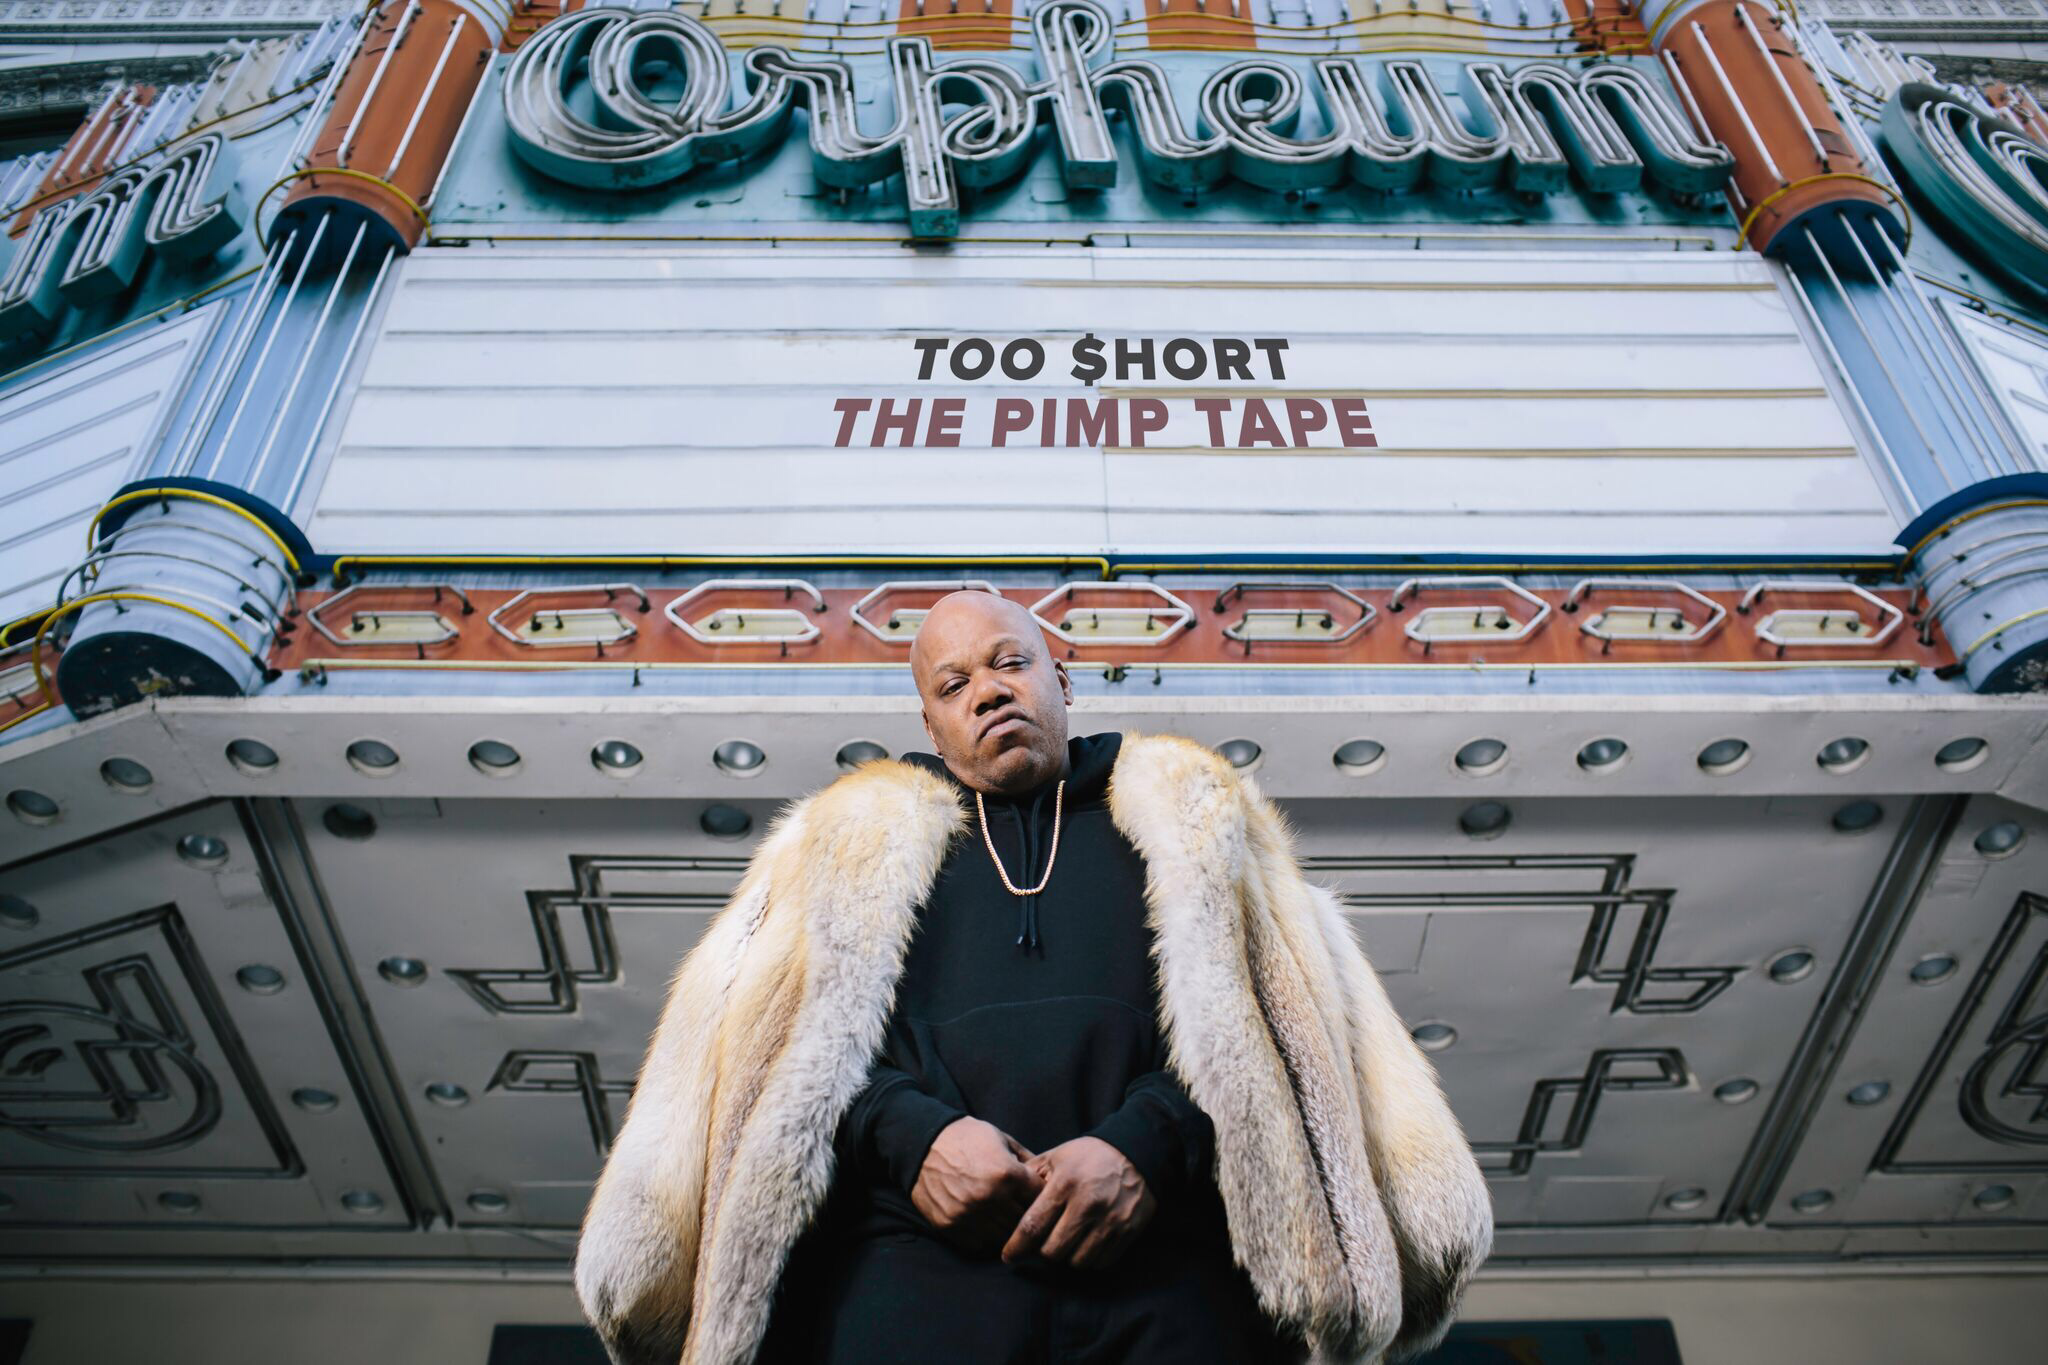 Too $hort Gears Up for 'The Pimp Tape' Featuring Ty Dolla Sign, DJ Khaled and More